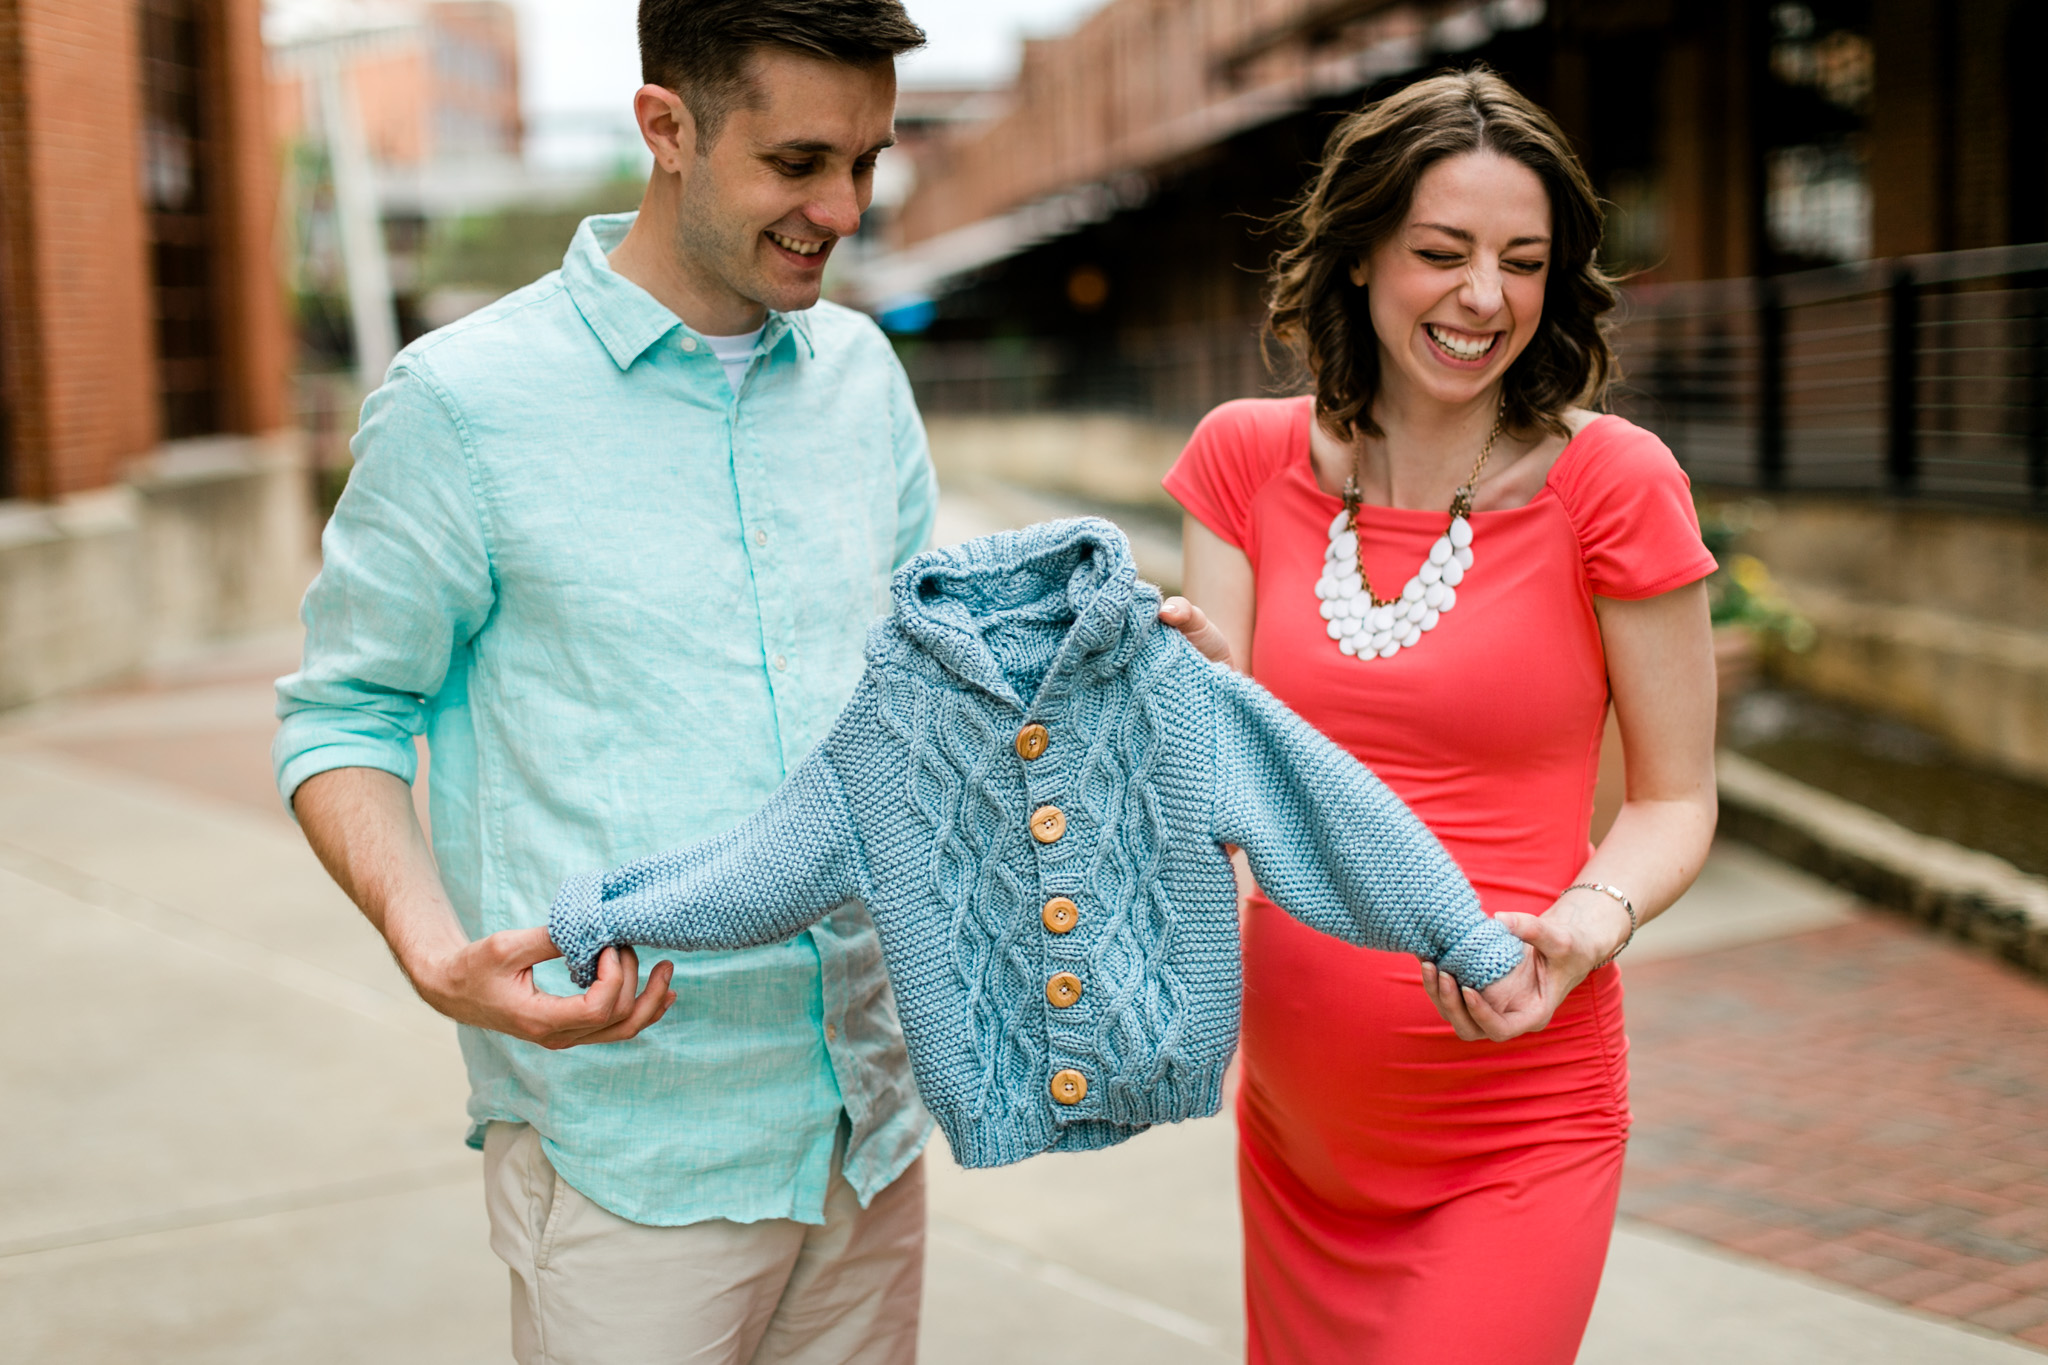 Couple holding baby sweater and laughing | Raleigh Family Photographer